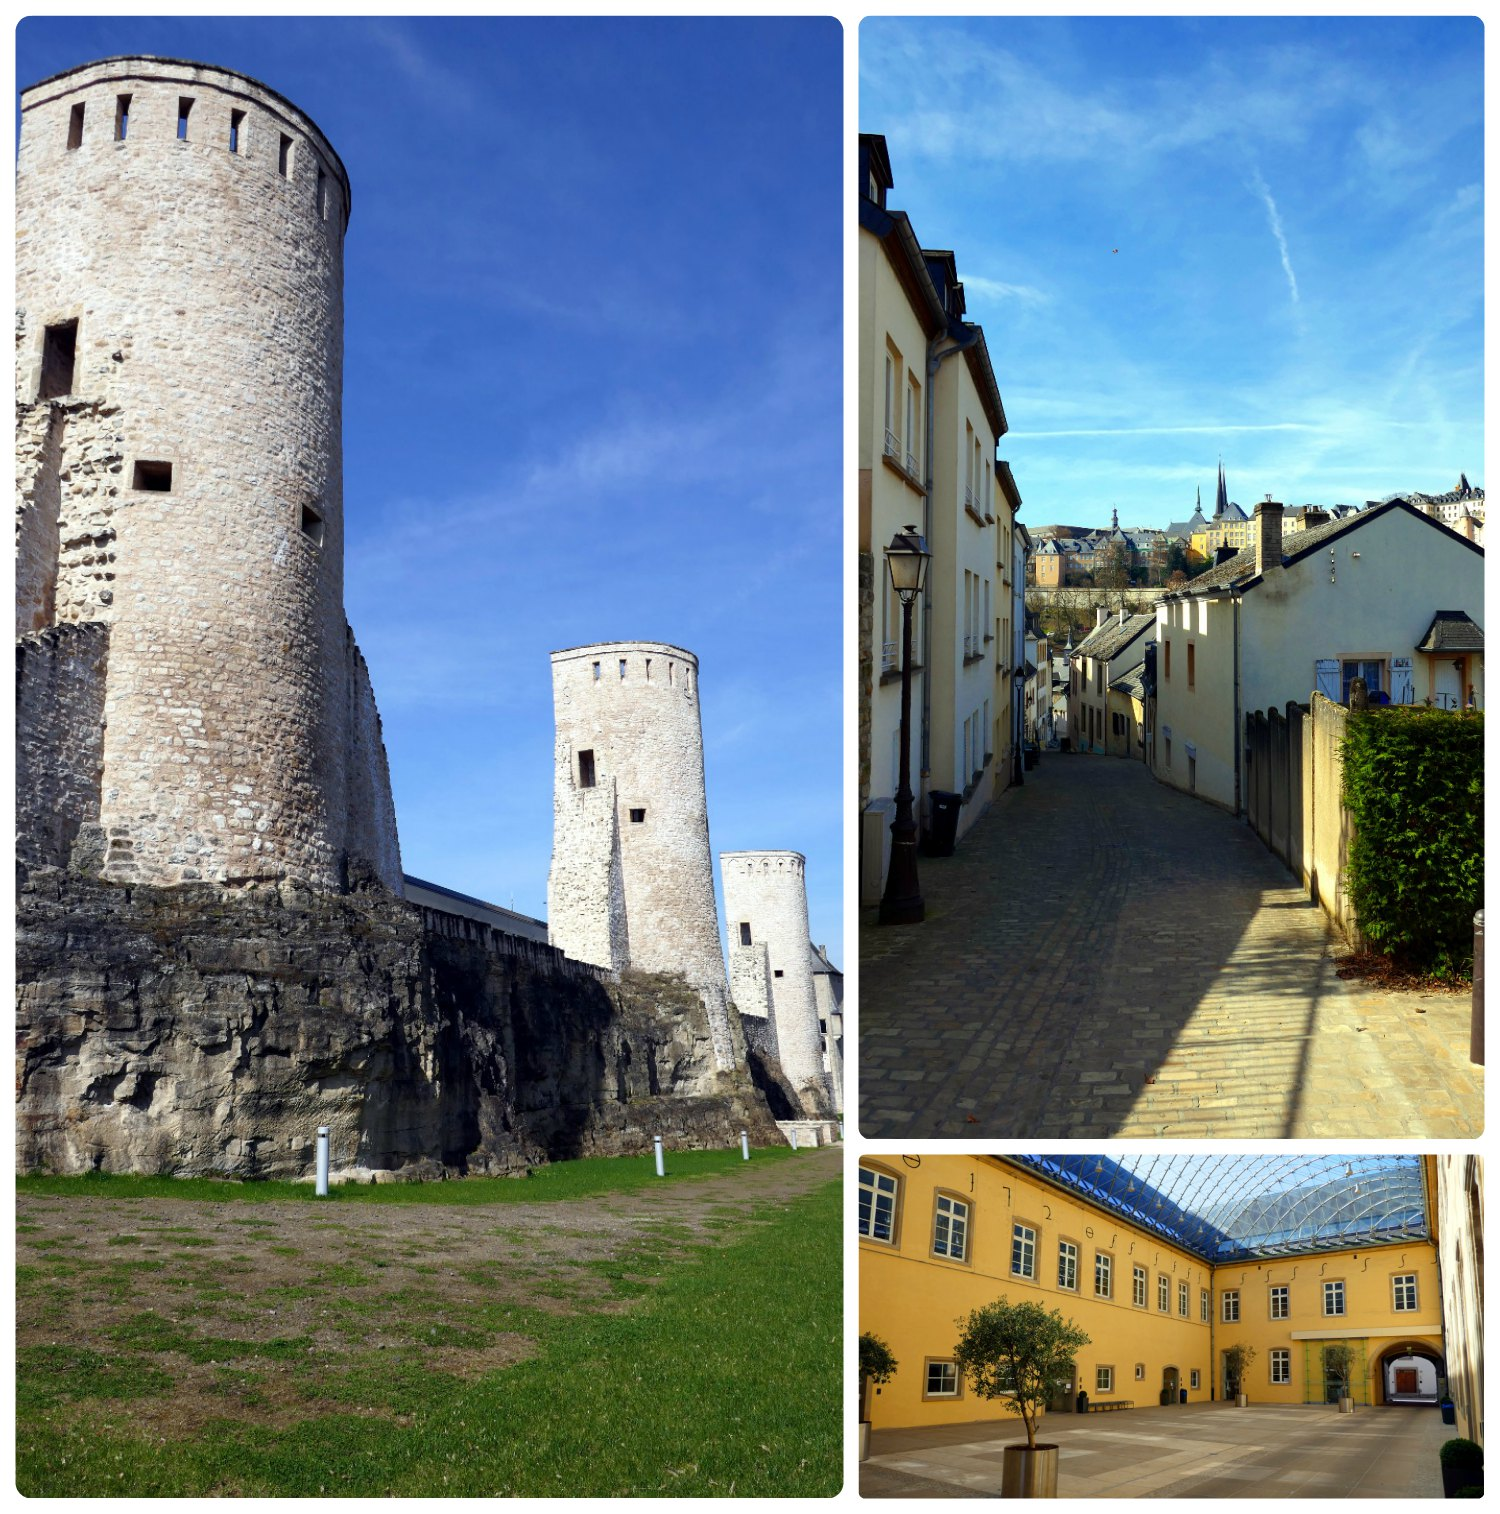 Luxembourg City, Luxembourg. Clockwise (from the top left): Ravelin Vauban Towers, streets leading to Second Gate of Trier and the Old Gate of Trier, inside the courtyard at Neumünster Abbey Cultural Exchange Center.